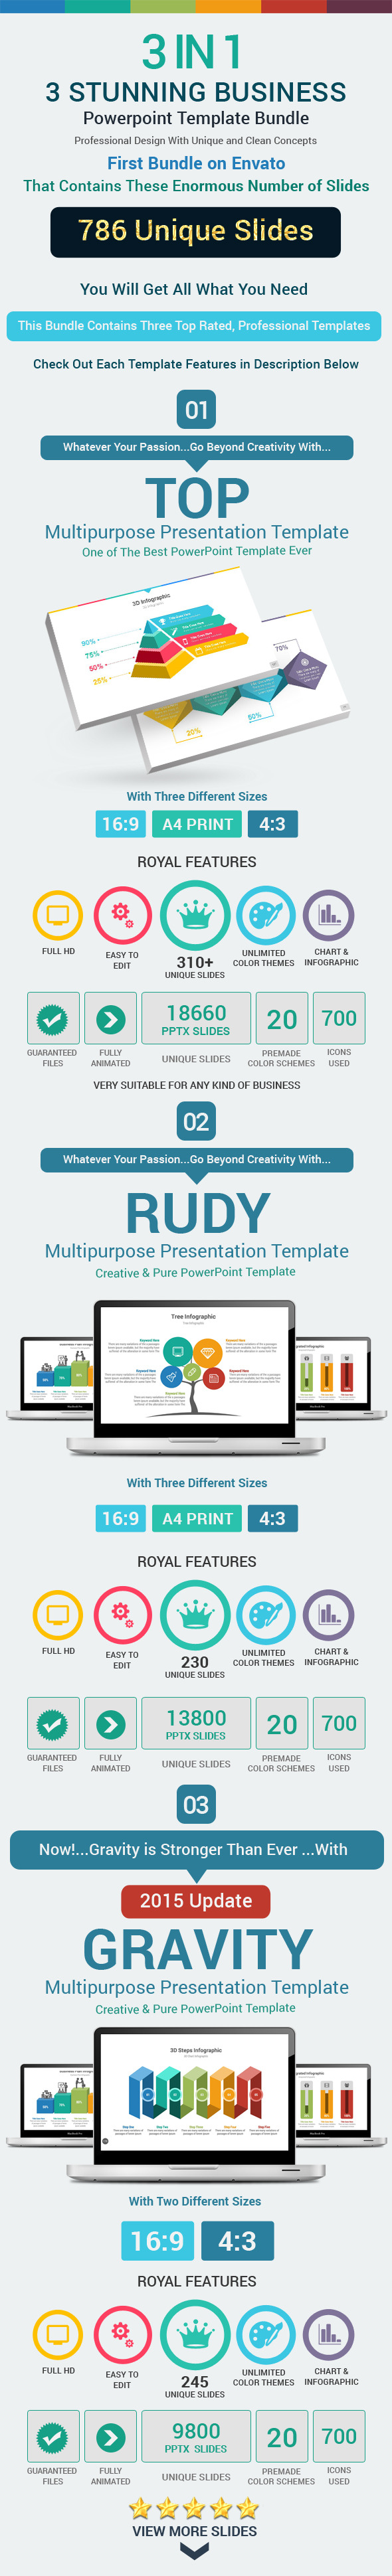 3 Stunning Business Powerpoint Template Bundle  - PowerPoint Templates Presentation Templates